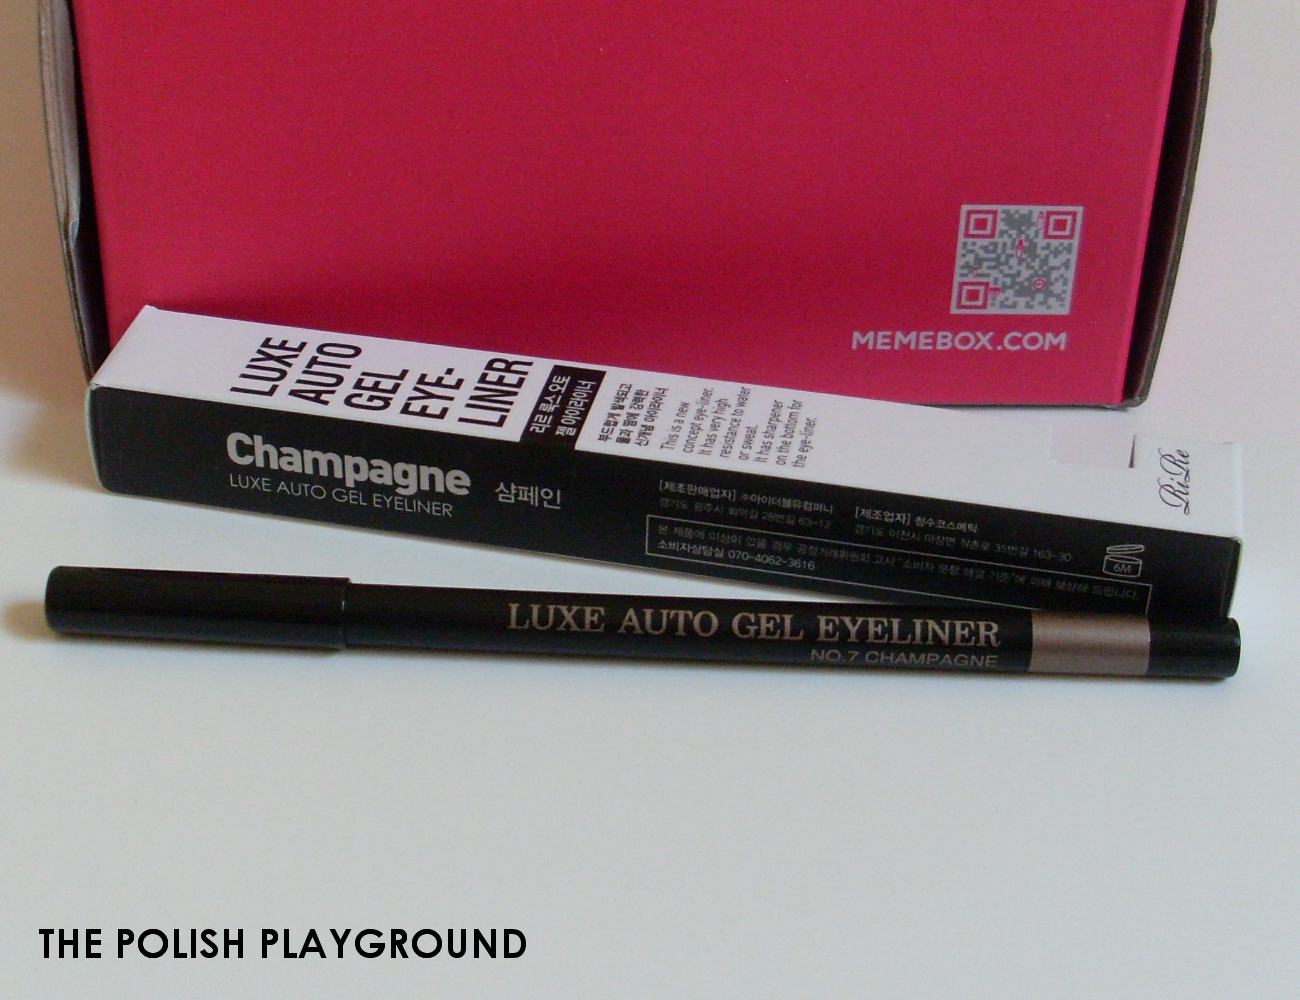 Memebox Special #17 K-Style Cosmetics Unboxing - RiRe Luxe Auto Gel Eyeliner in Champagne